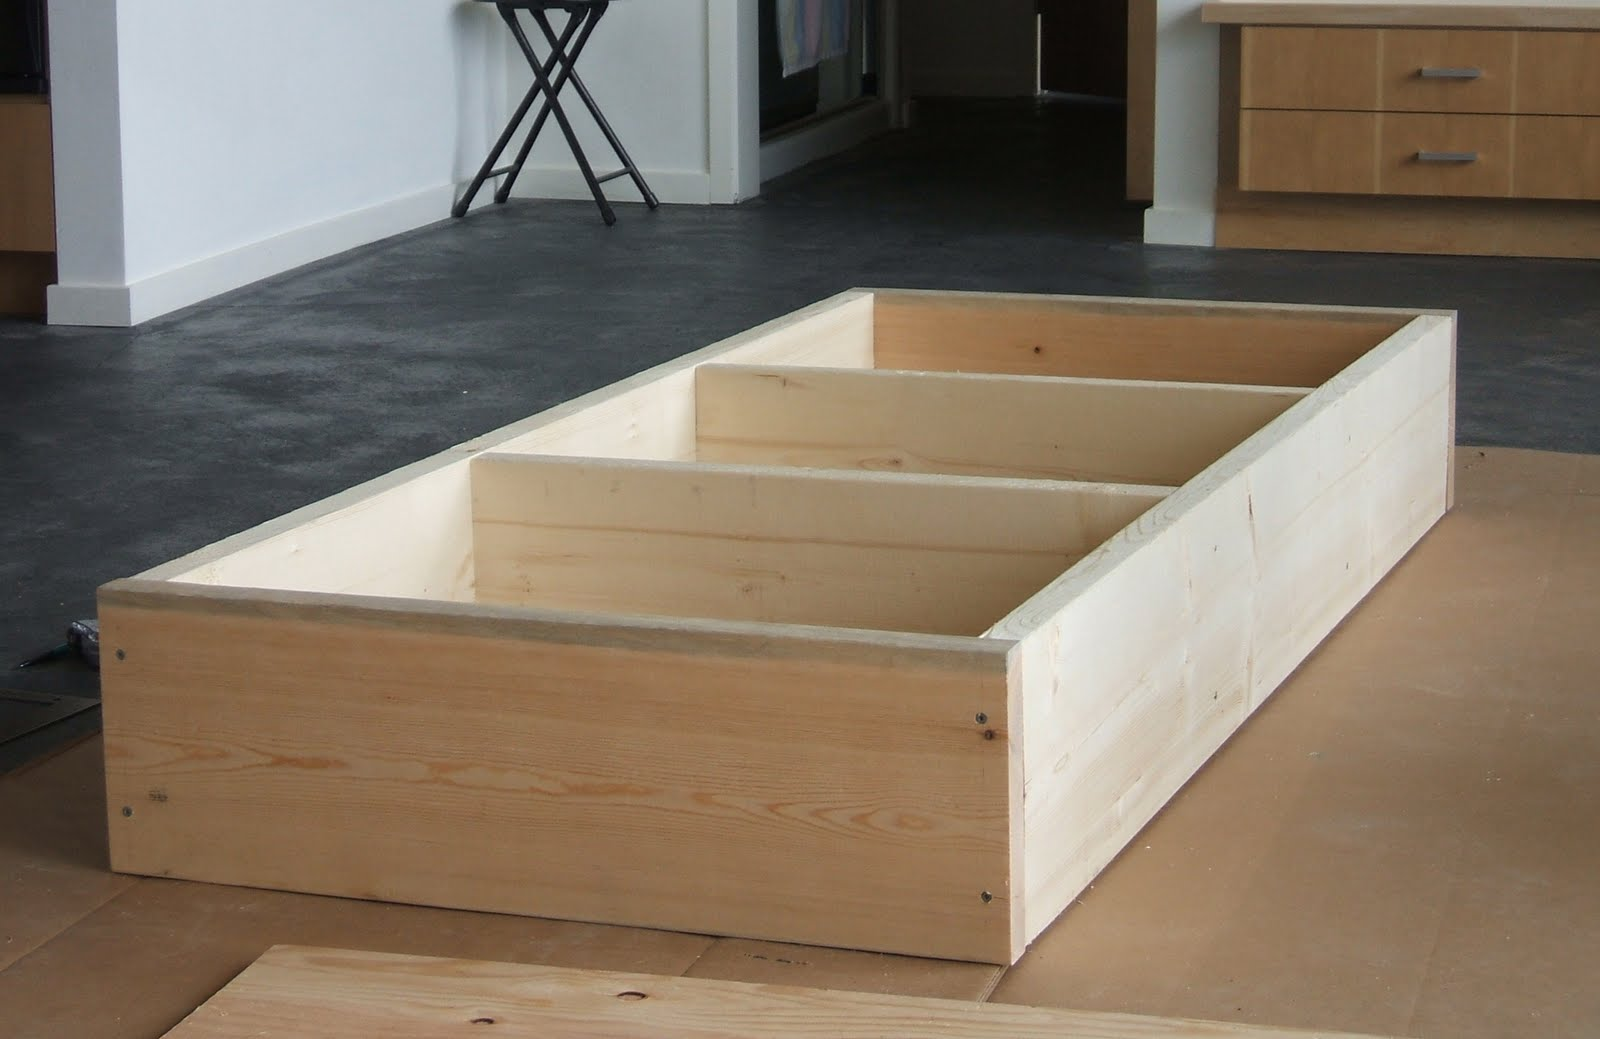 how to build a twin platform bed with storage | Woodworking Community ...